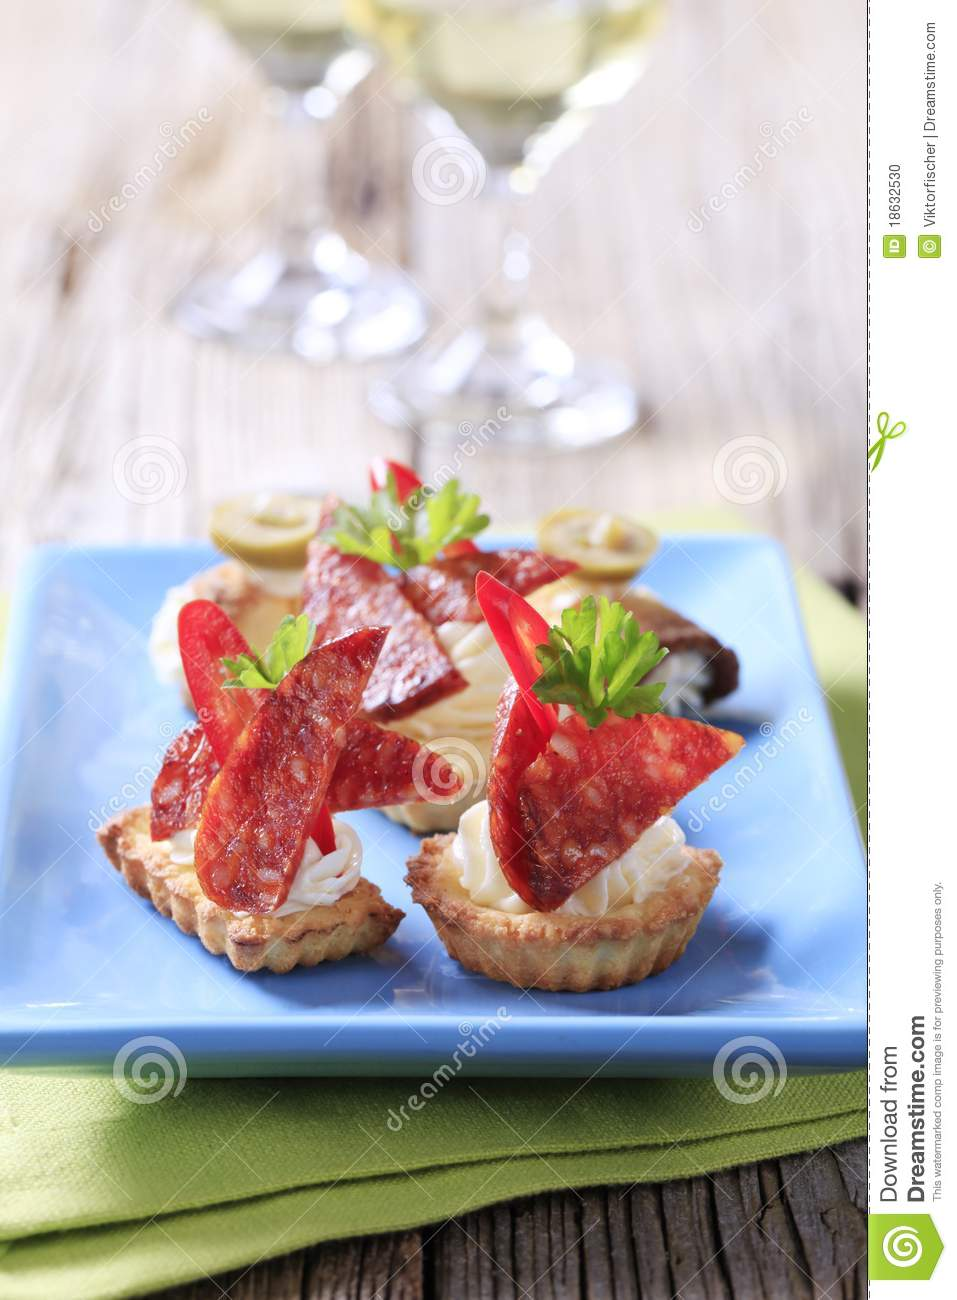 Tartlet royalty free stock photo 13052397 for Buy canape shells